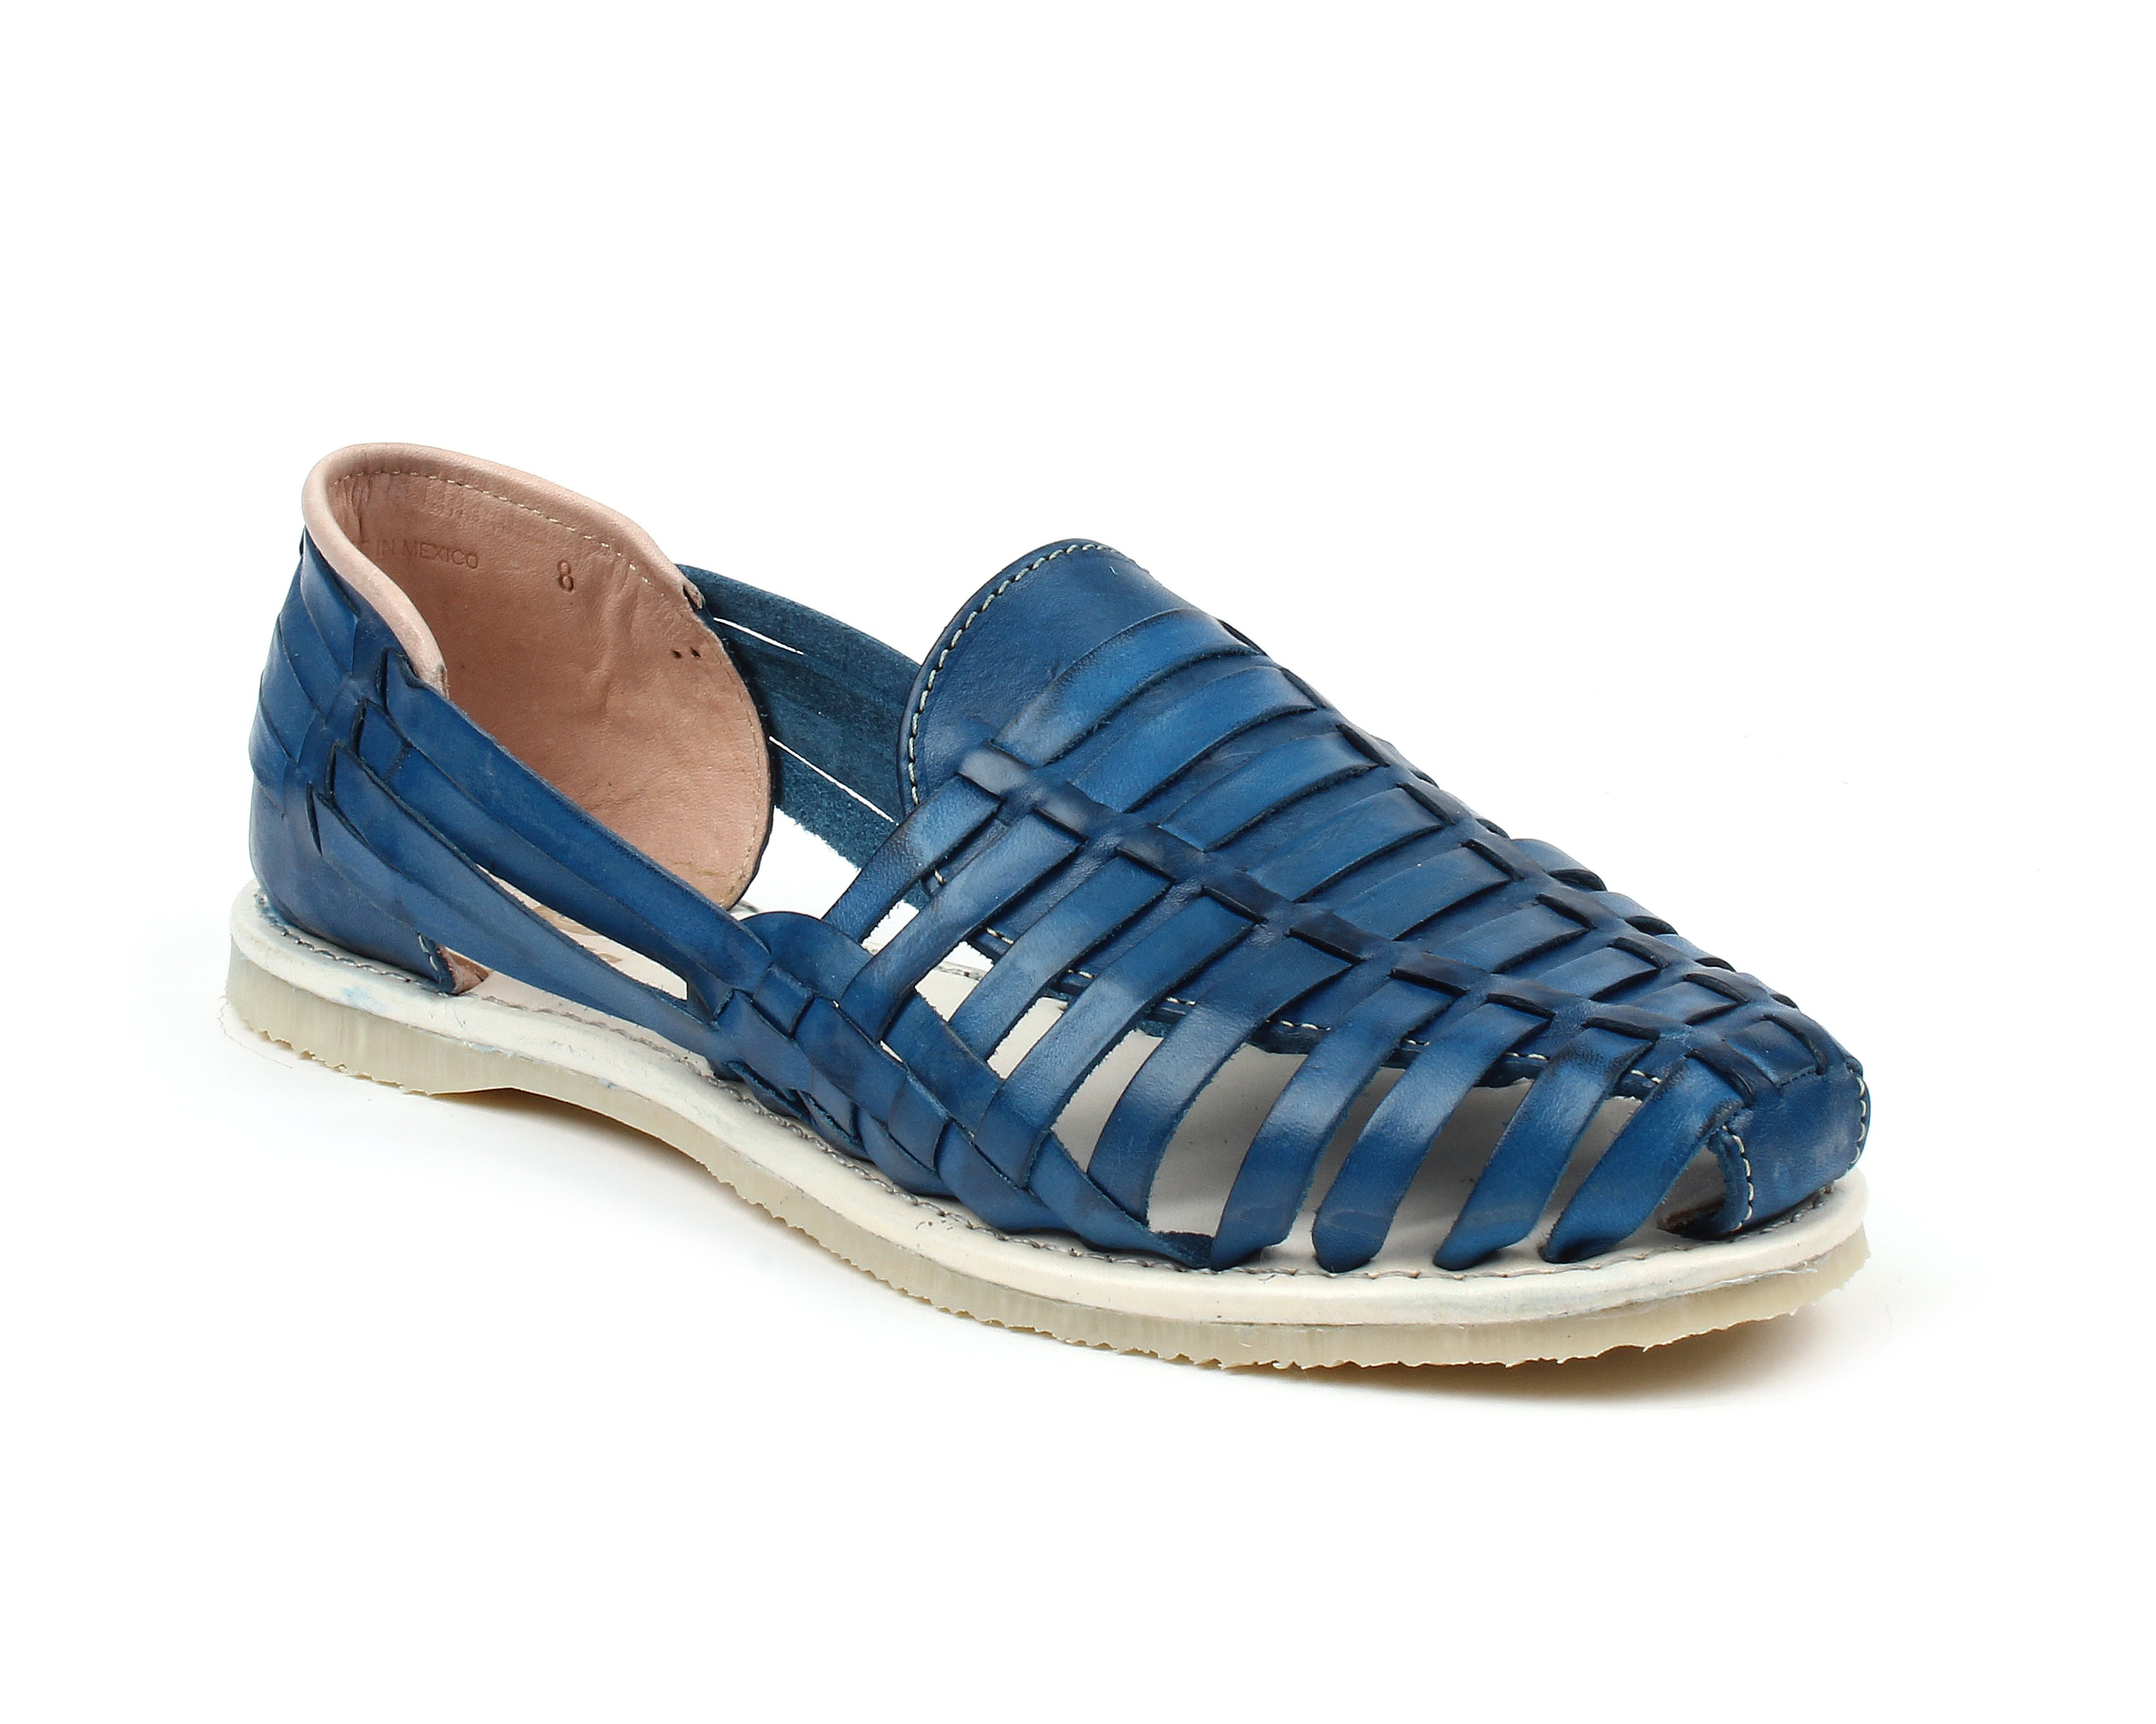 d73afddf6c44 Our leather huarache sandals are the perfect warm weather